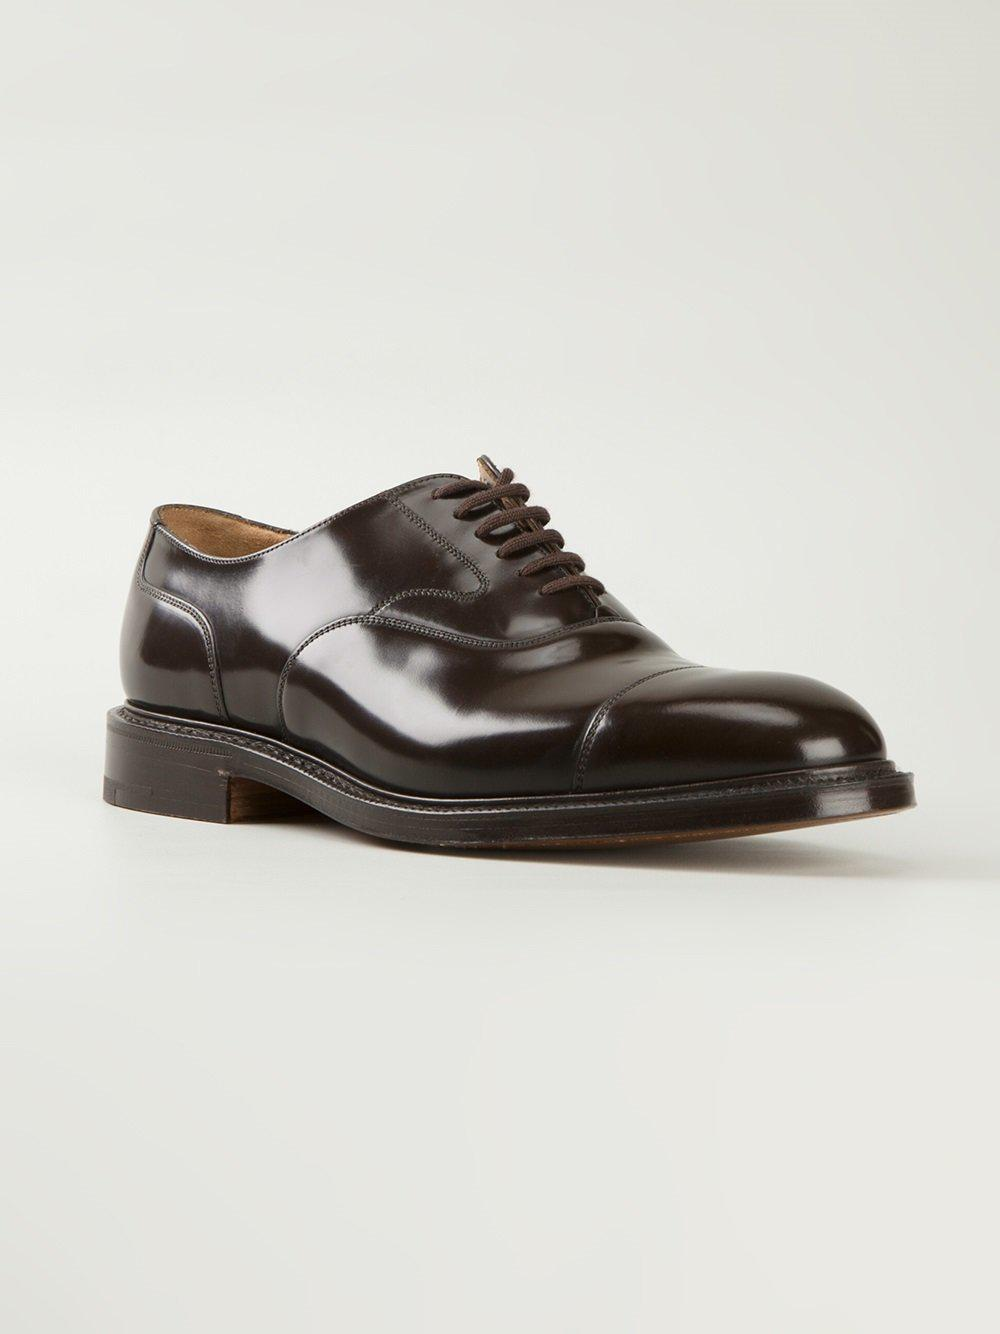 Church's Leather 'lancaster' Oxford Shoes in Brown for Men